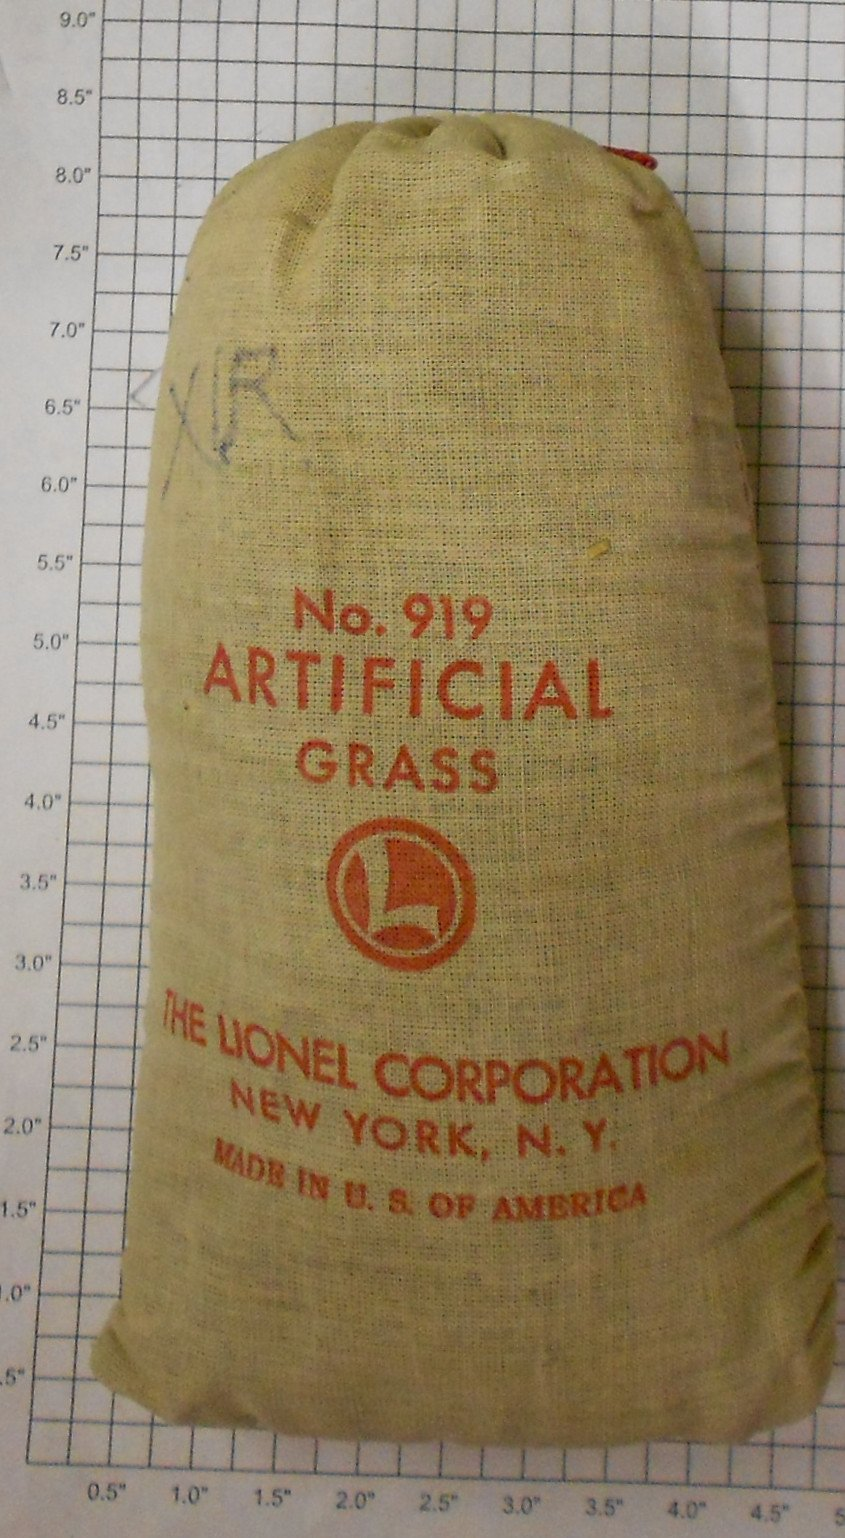 Lionel 919 Bag of Artificial Grass This is a Bag of Lionel 919 Artificial Grass from 1946-64. During the early postwar era, Lionel offered a limited number of scenery related products to it's customers for their layouts. The artifical grass was a prewar carryover item and was simply colored sawdust packaged in a Lionel cloth bag.Condition: Part (N/ATrainz does not provide grading for parts.Standards for all toy train related accessory items apply to the visual appearance of the item and do not consider the operating functionality of the equipment.Condition and Grading Standards are subjective, at best, and are intended to act as a guide. )Operational Status: FunctionalThis part is in workable condition.Original Box: NoManufacturer: LionelModel Number: 919Years Manufactured: 1946 - 1964Category 1: PartsCategory 2: O ScaleAvailability: Ships in 3 Business Days!We are unable to provide parts lookup service or fitment assistance.The Trainz SKU for this item is P11402814. Track: 11402814 - Parts (33top) - 001 - TrainzAuctionGroup00UNK - TDIDUNK